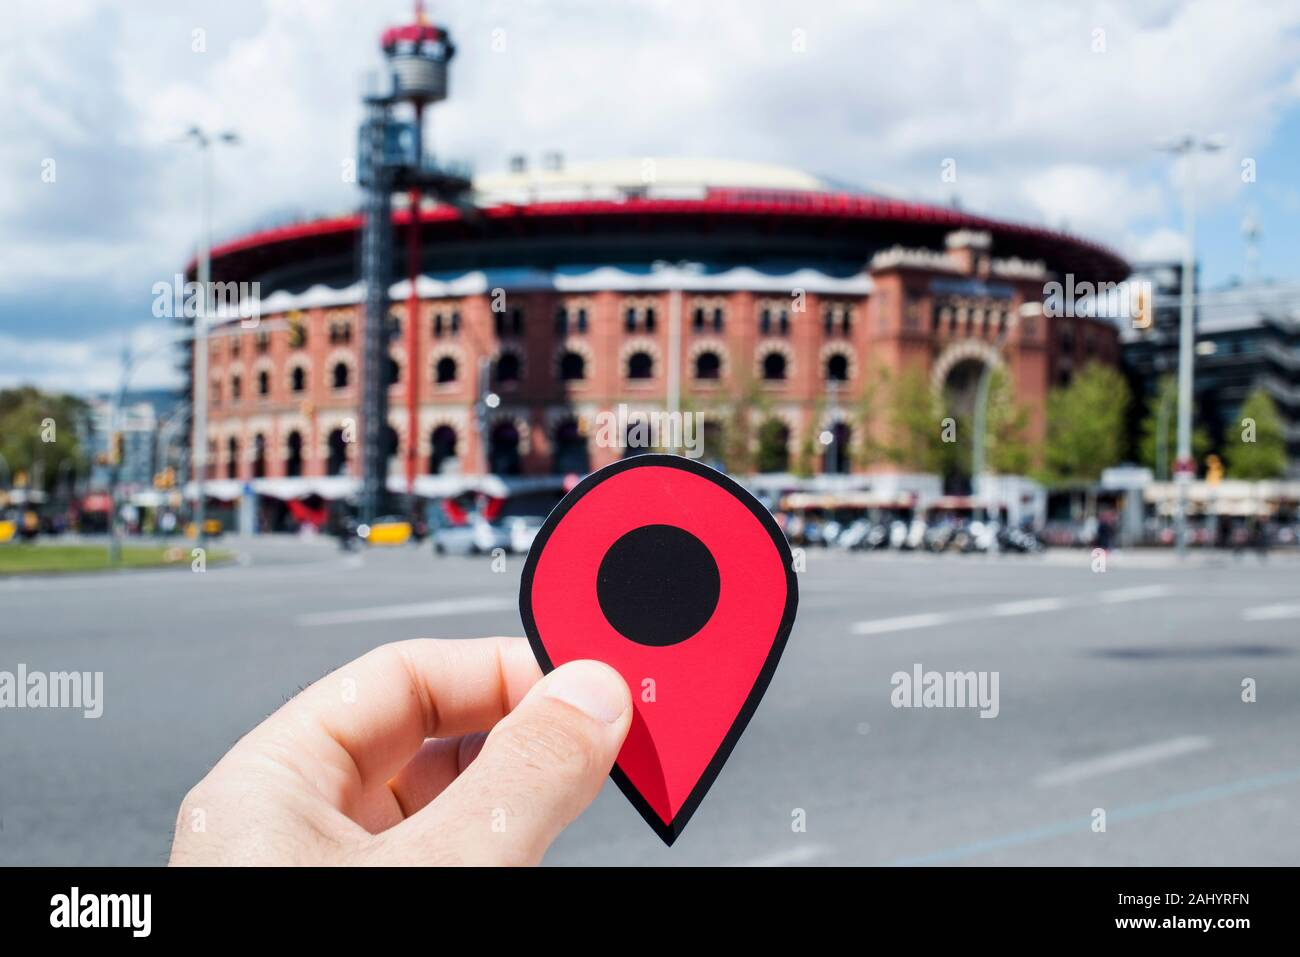 BARCELONA, SPAIN - APRIL 12, 2018: Closeup of the hand of a young caucasian man with a red marker at the Arenas de Barcelona, an old bullring that is Stock Photo